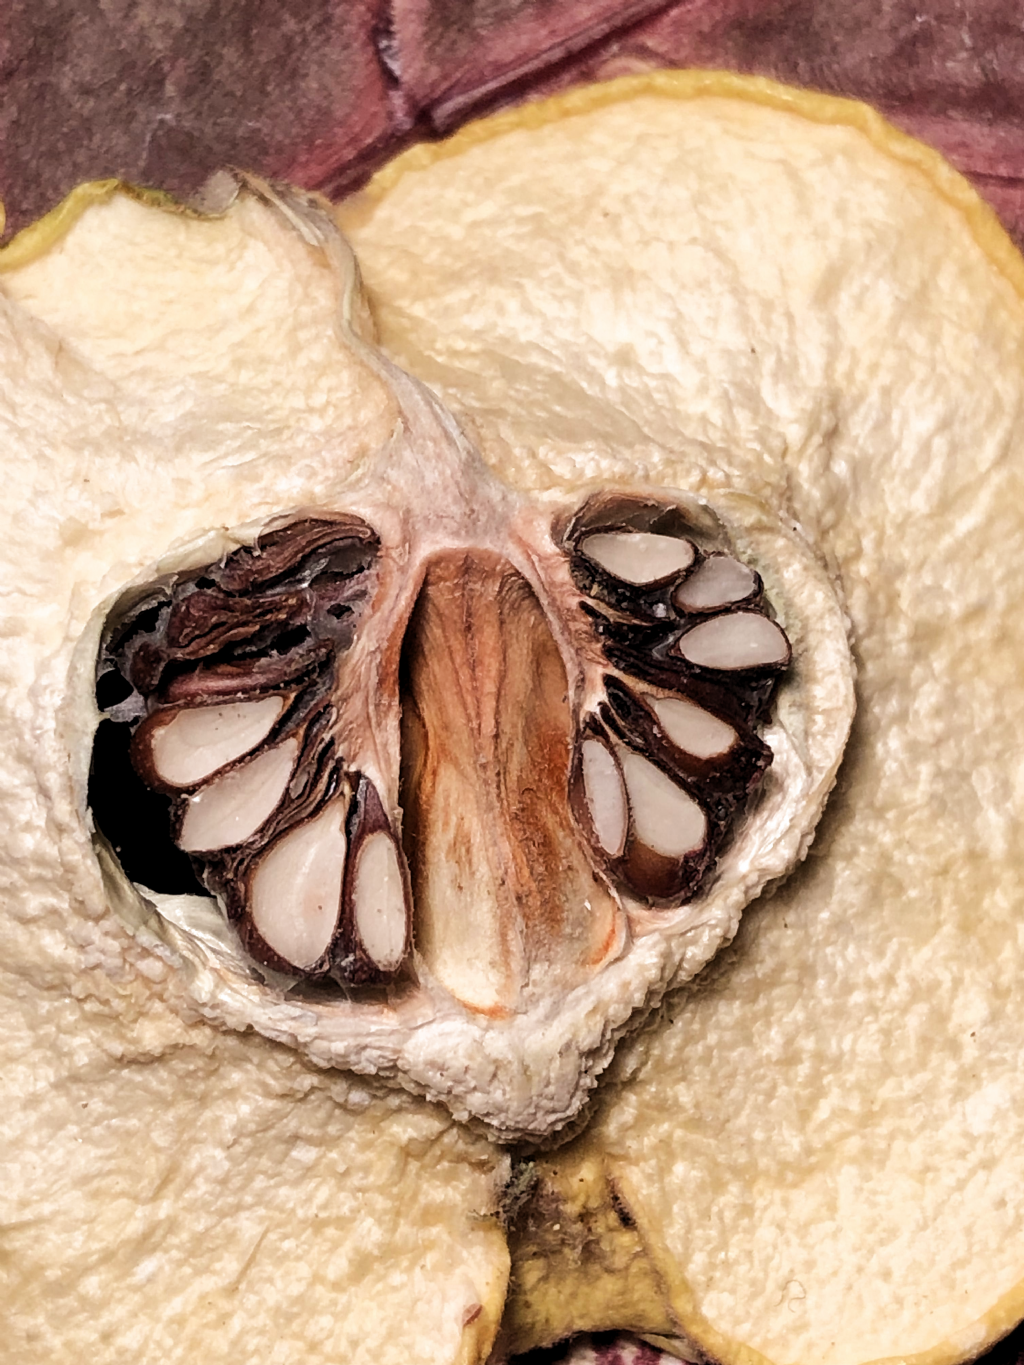 Quince fruit close up photography #quince #fruit #nature #naturephotography #natureart #natureaddict #photoshoot #photography #seed #seedscolor #closeup #microscopic #inside #interestingthings #interesting #fruit #middle